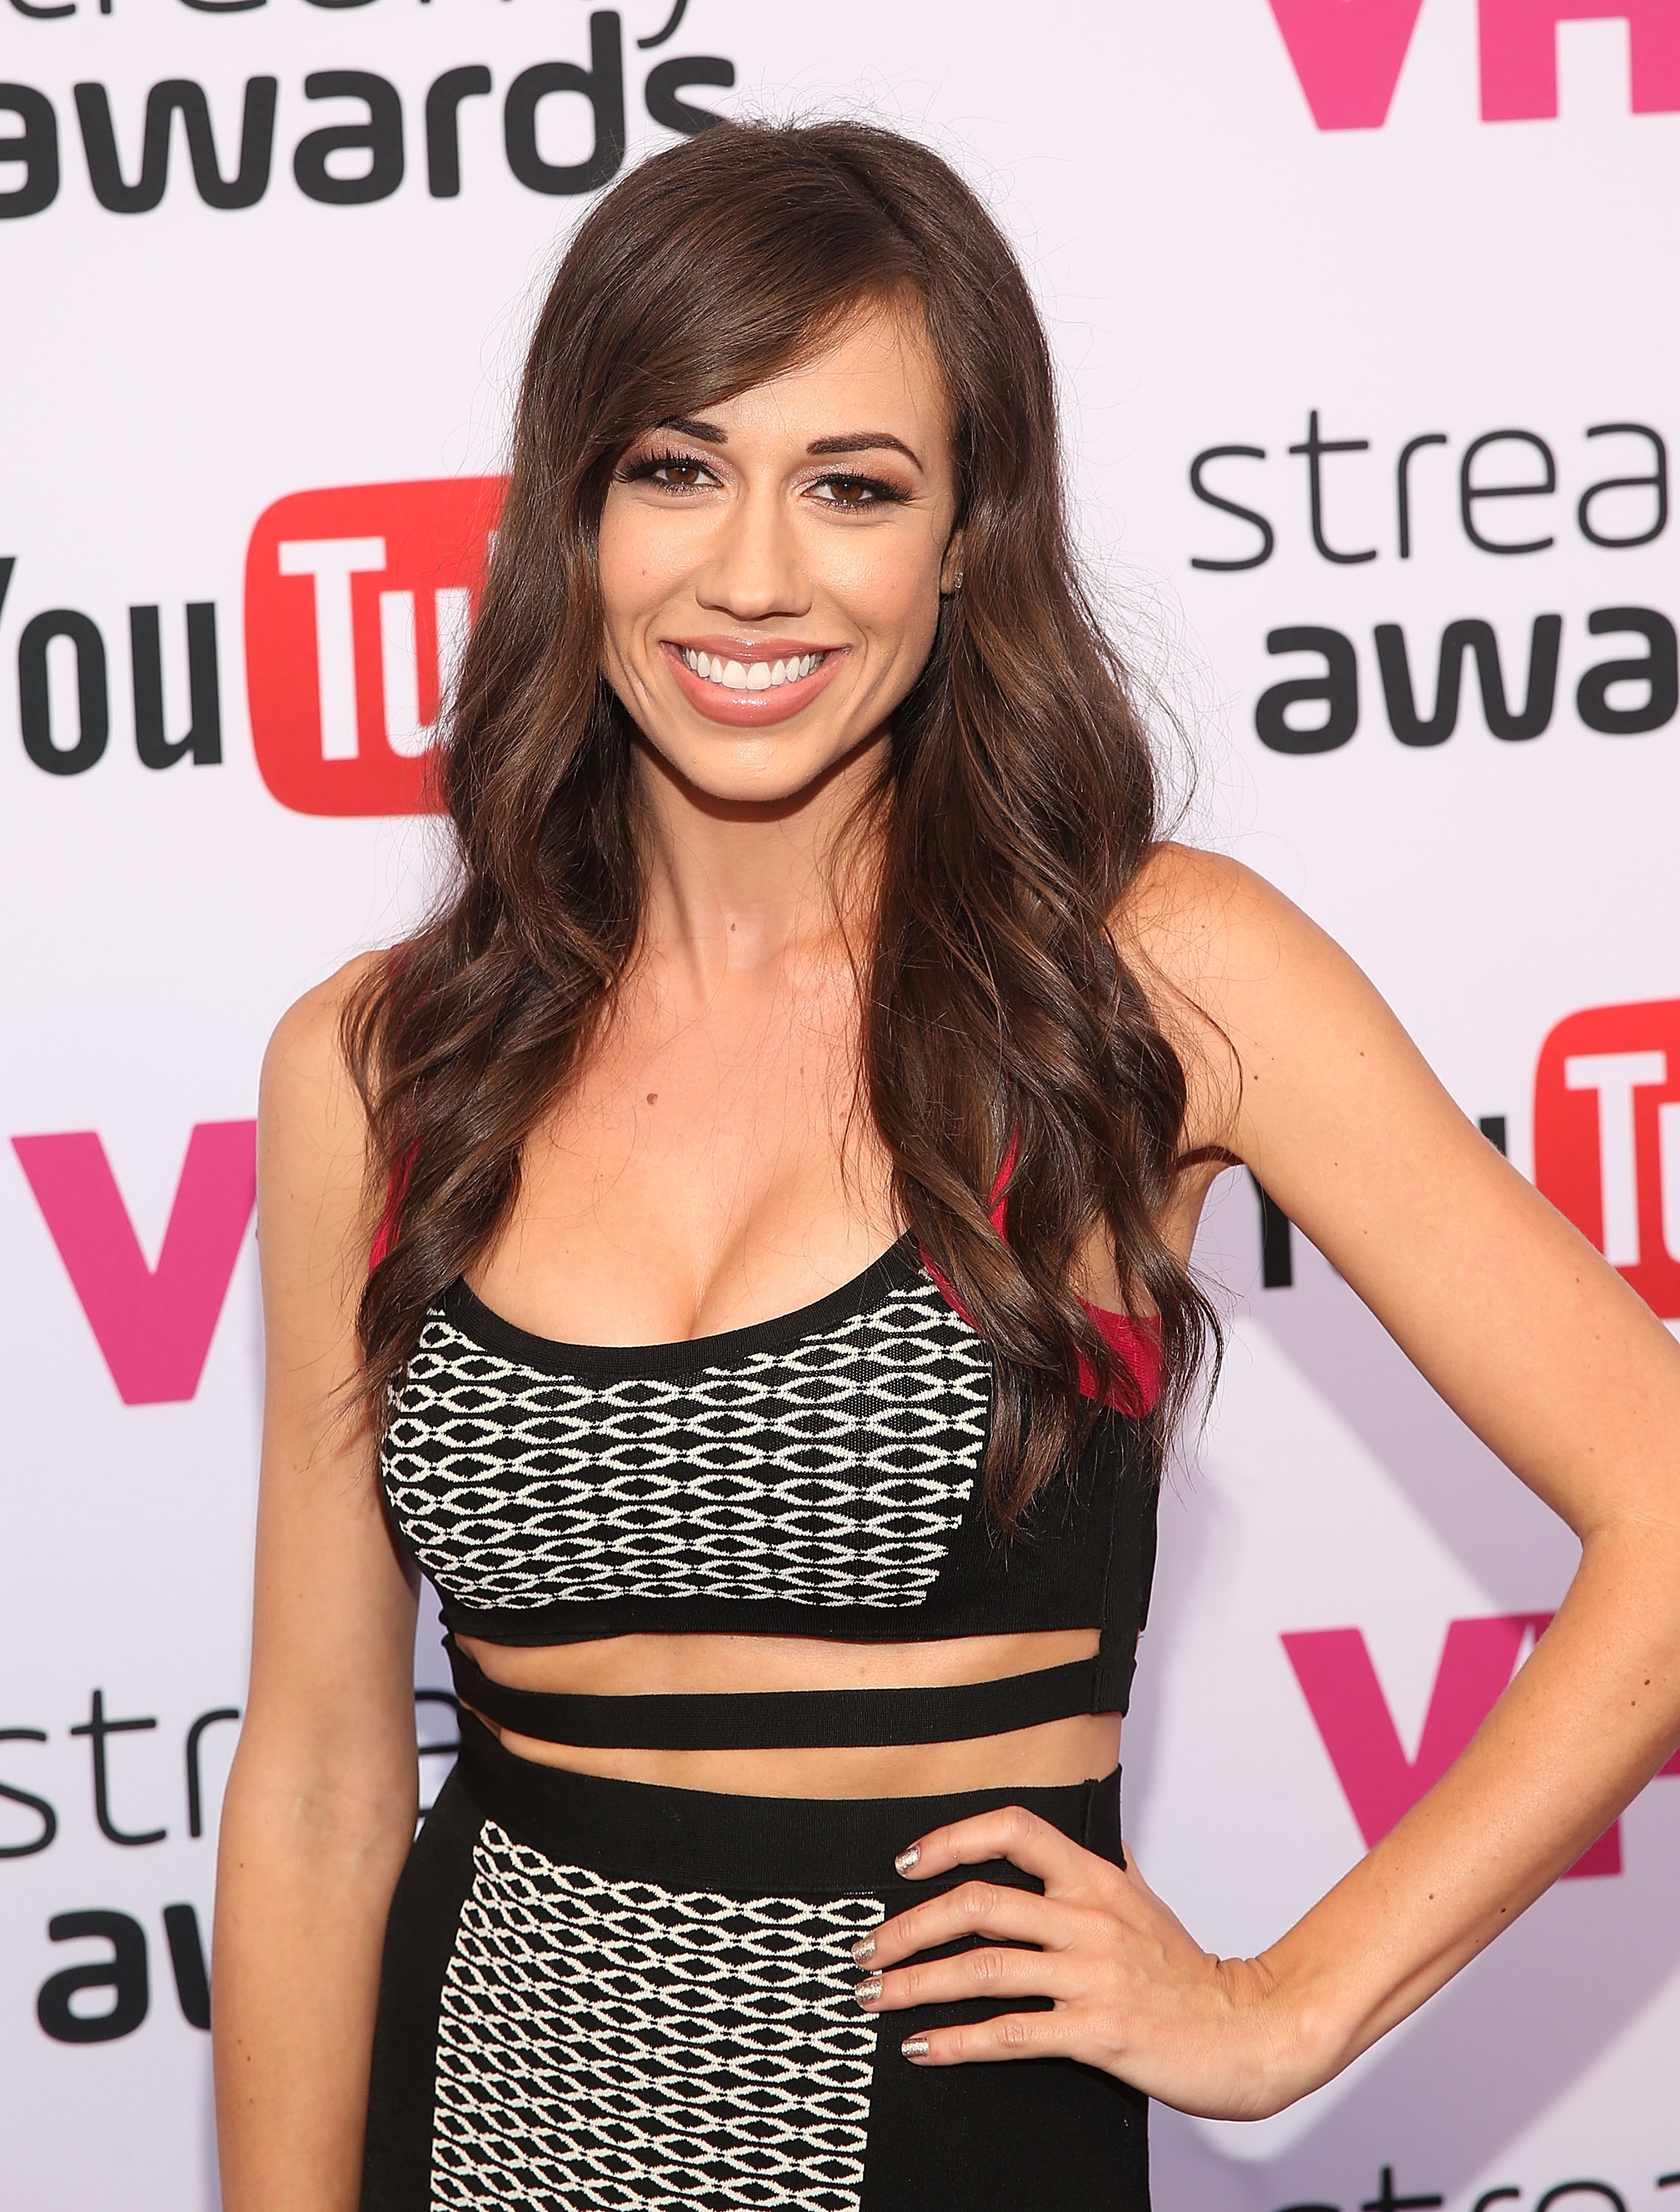 nude Colleen Ballinger (26 photo) Pussy, Instagram, butt